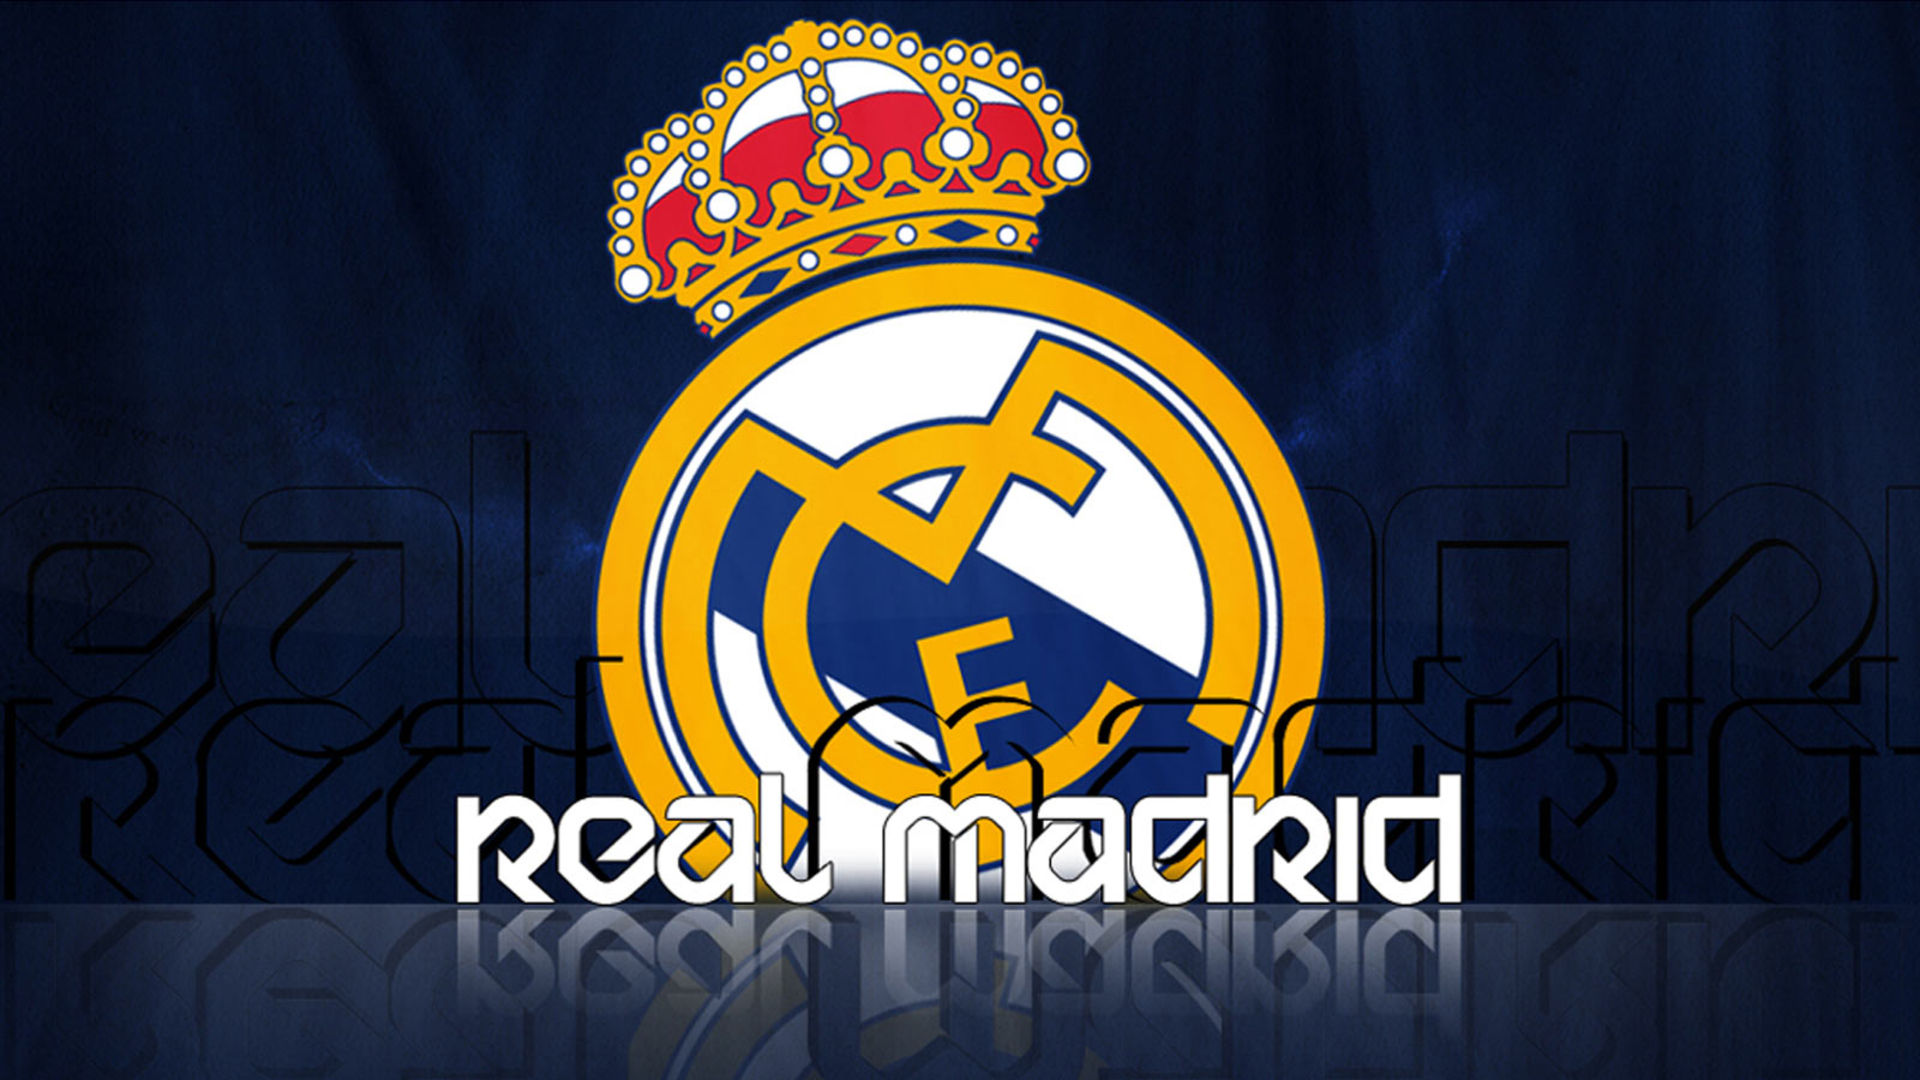 1920x1080 - Real Madrid C.F. Wallpapers 8